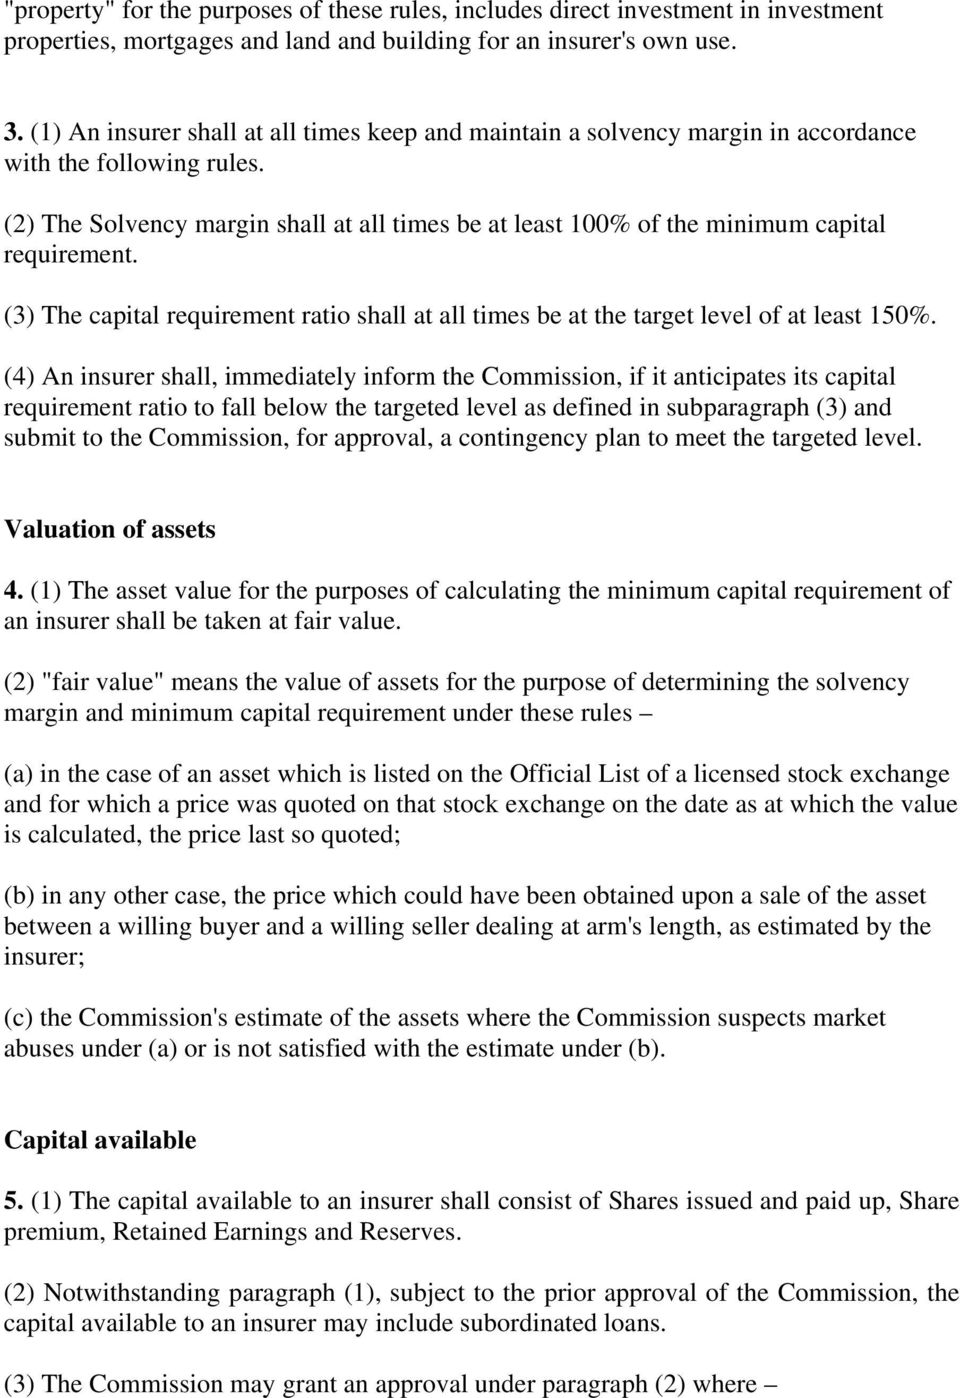 (2) The Solvency margin shall at all times be at least 100% of the minimum capital requirement. (3) The capital requirement ratio shall at all times be at the target level of at least 150%.